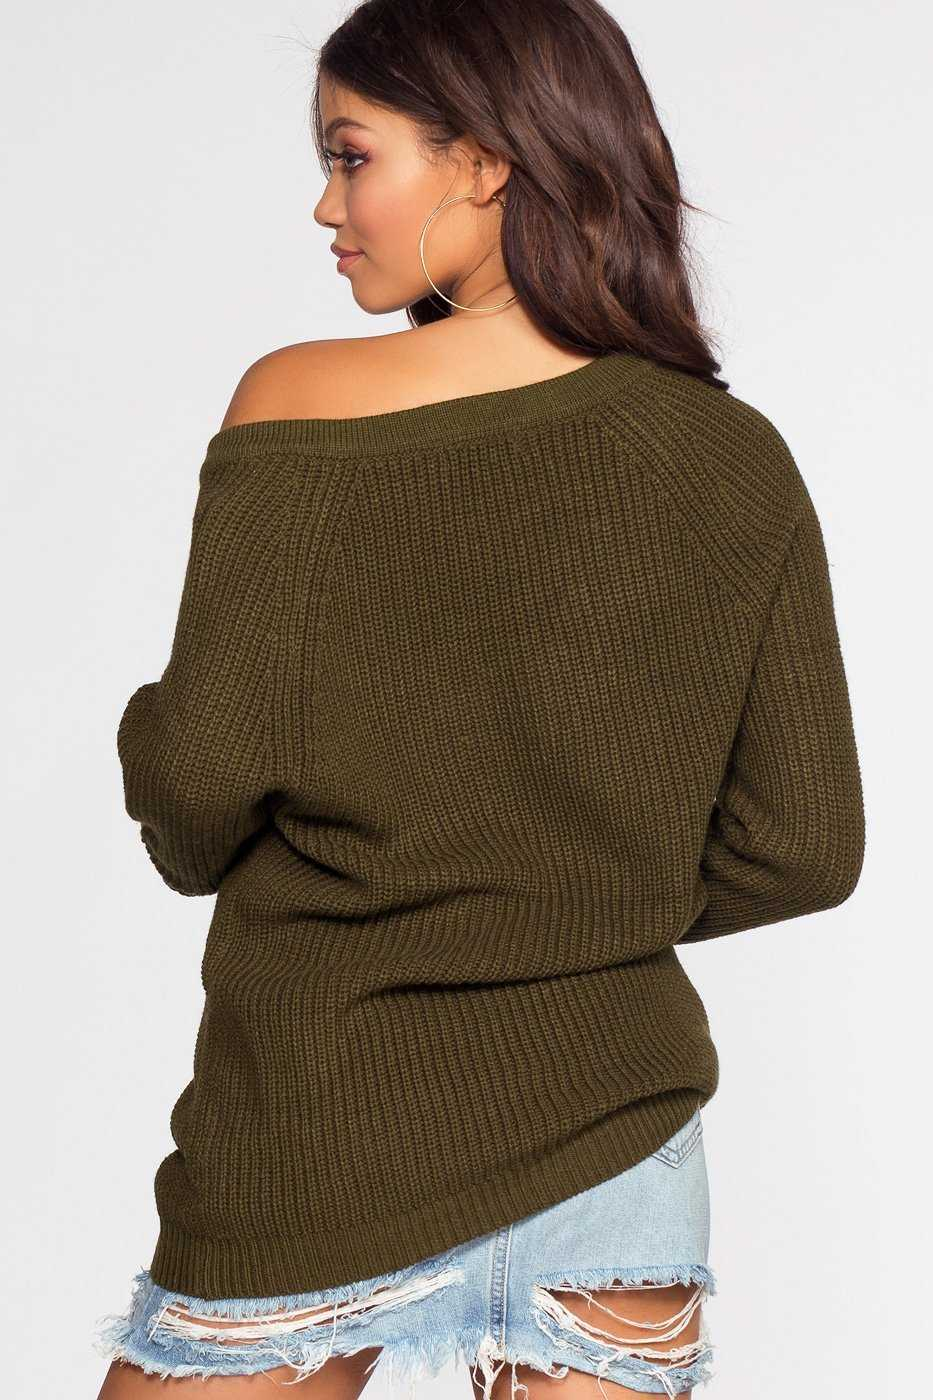 Sweaters - Elsa Lace Up Sweater - Olive